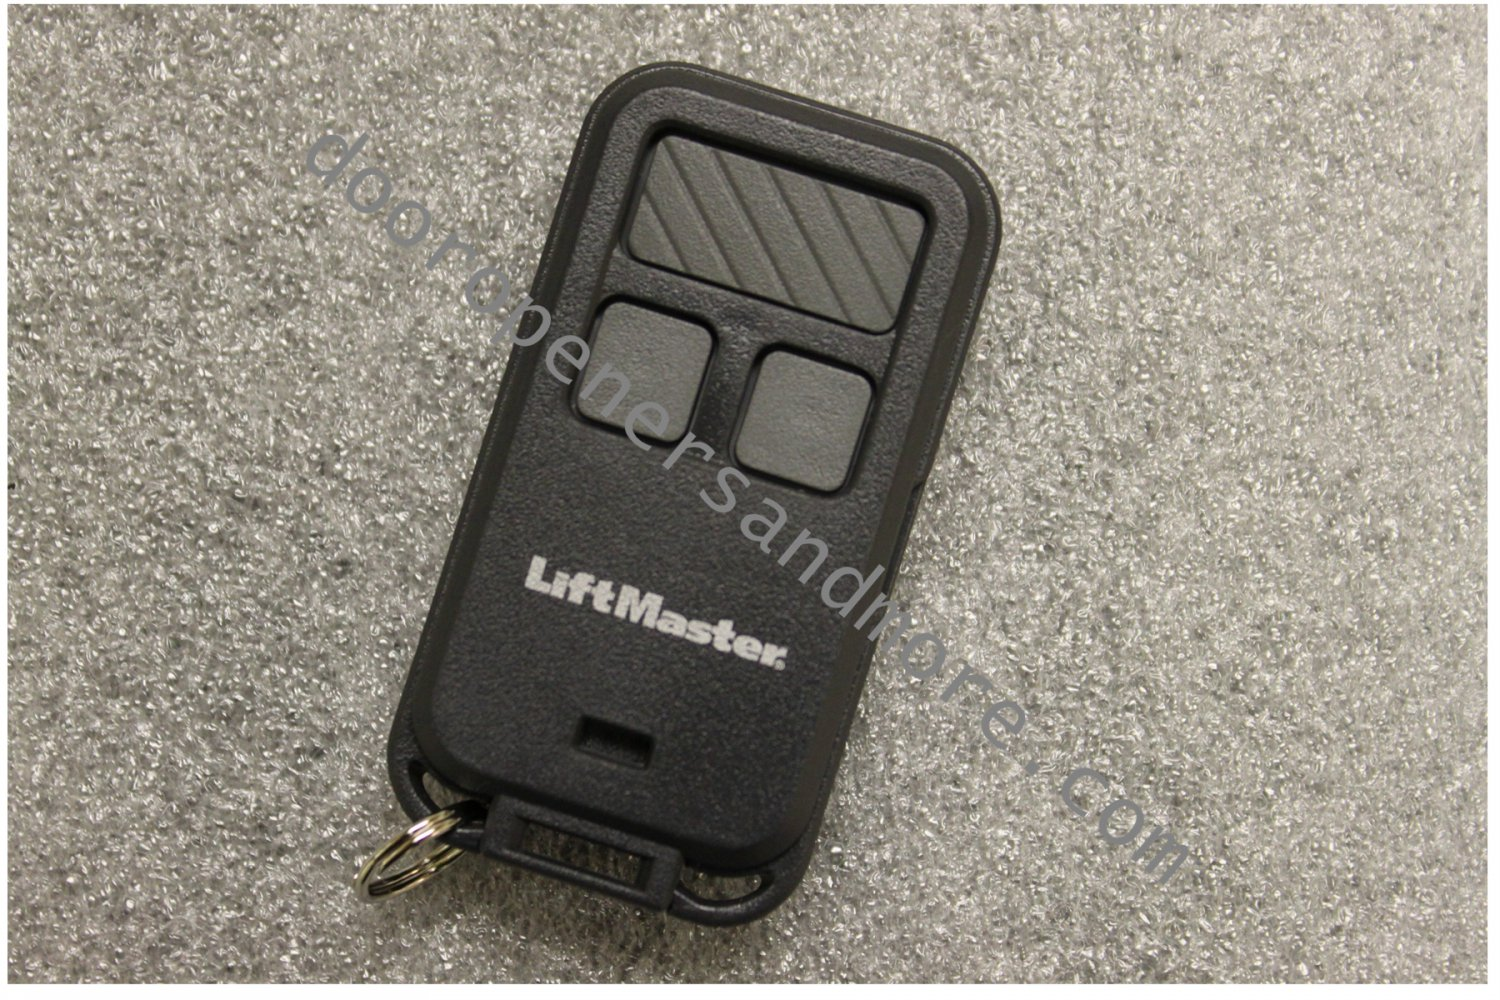 Liftmaster 890max 3 Button Mini Keychain Remote Myq